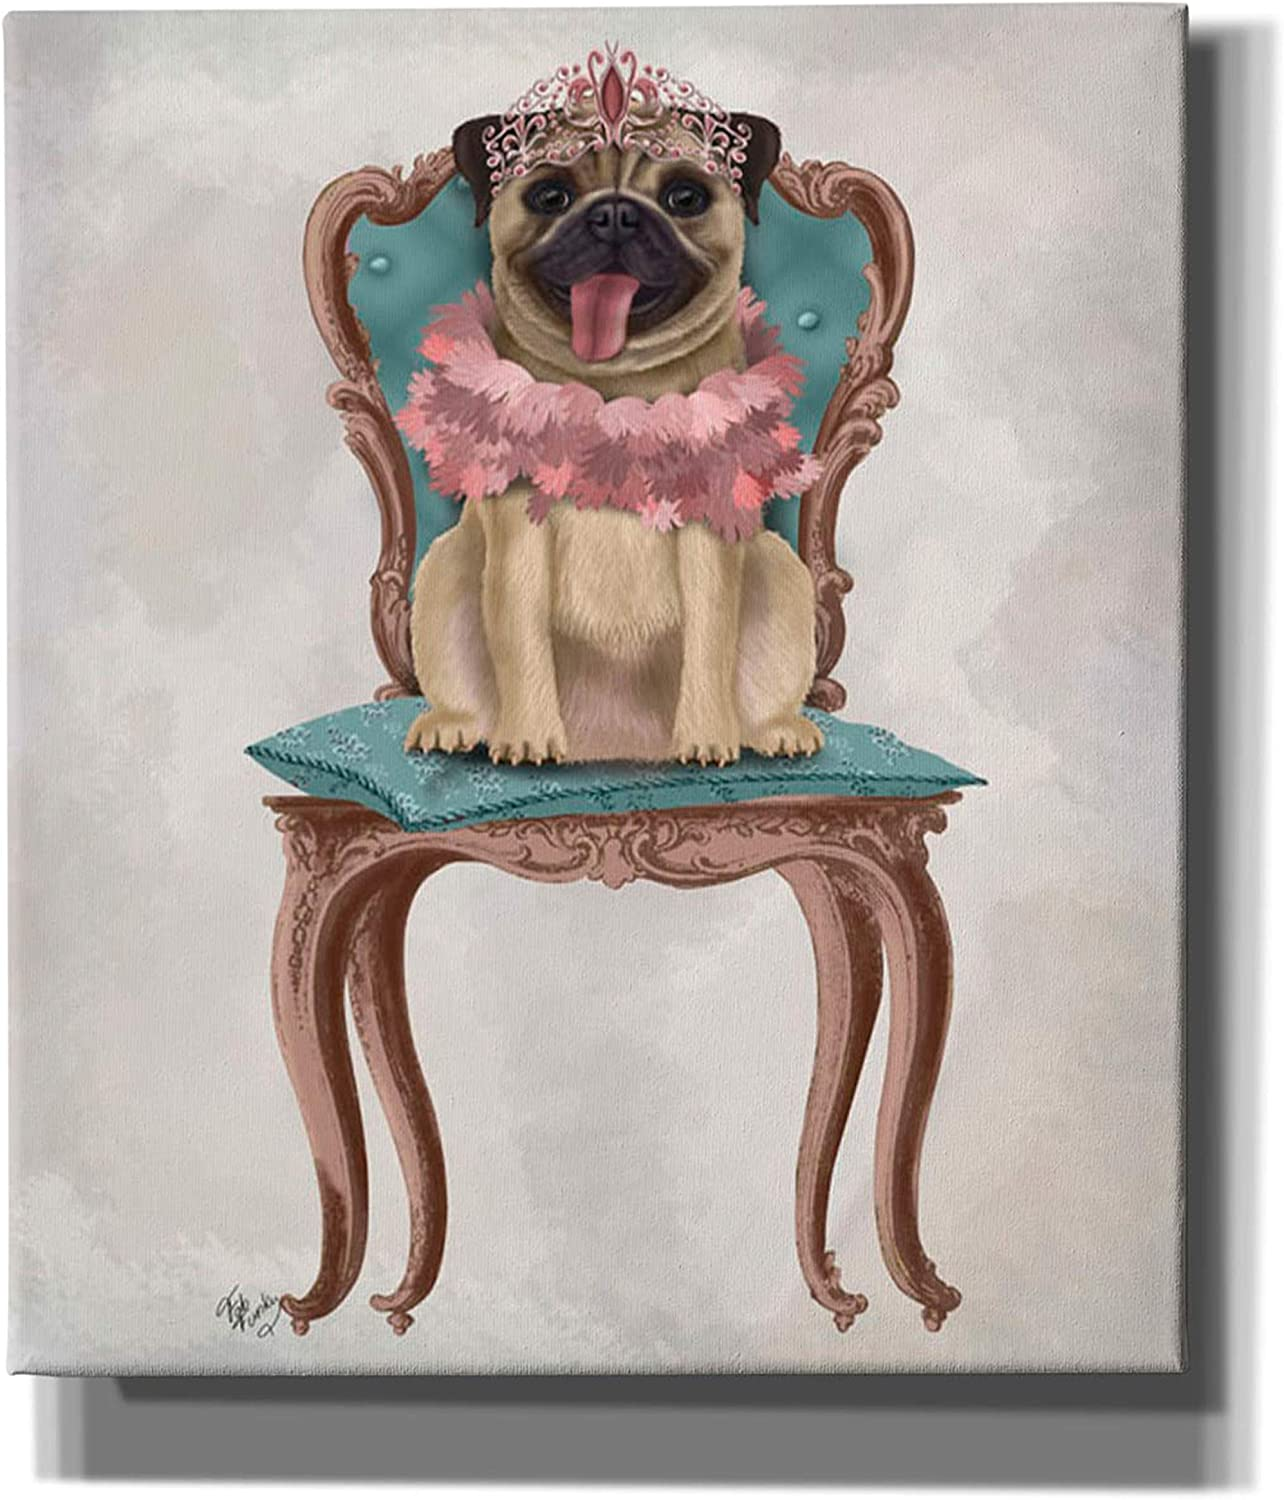 Epic Graffiti 'Pug Princess Don't miss the campaign on Chair' by Wall Canvas New popularity Funky Fab